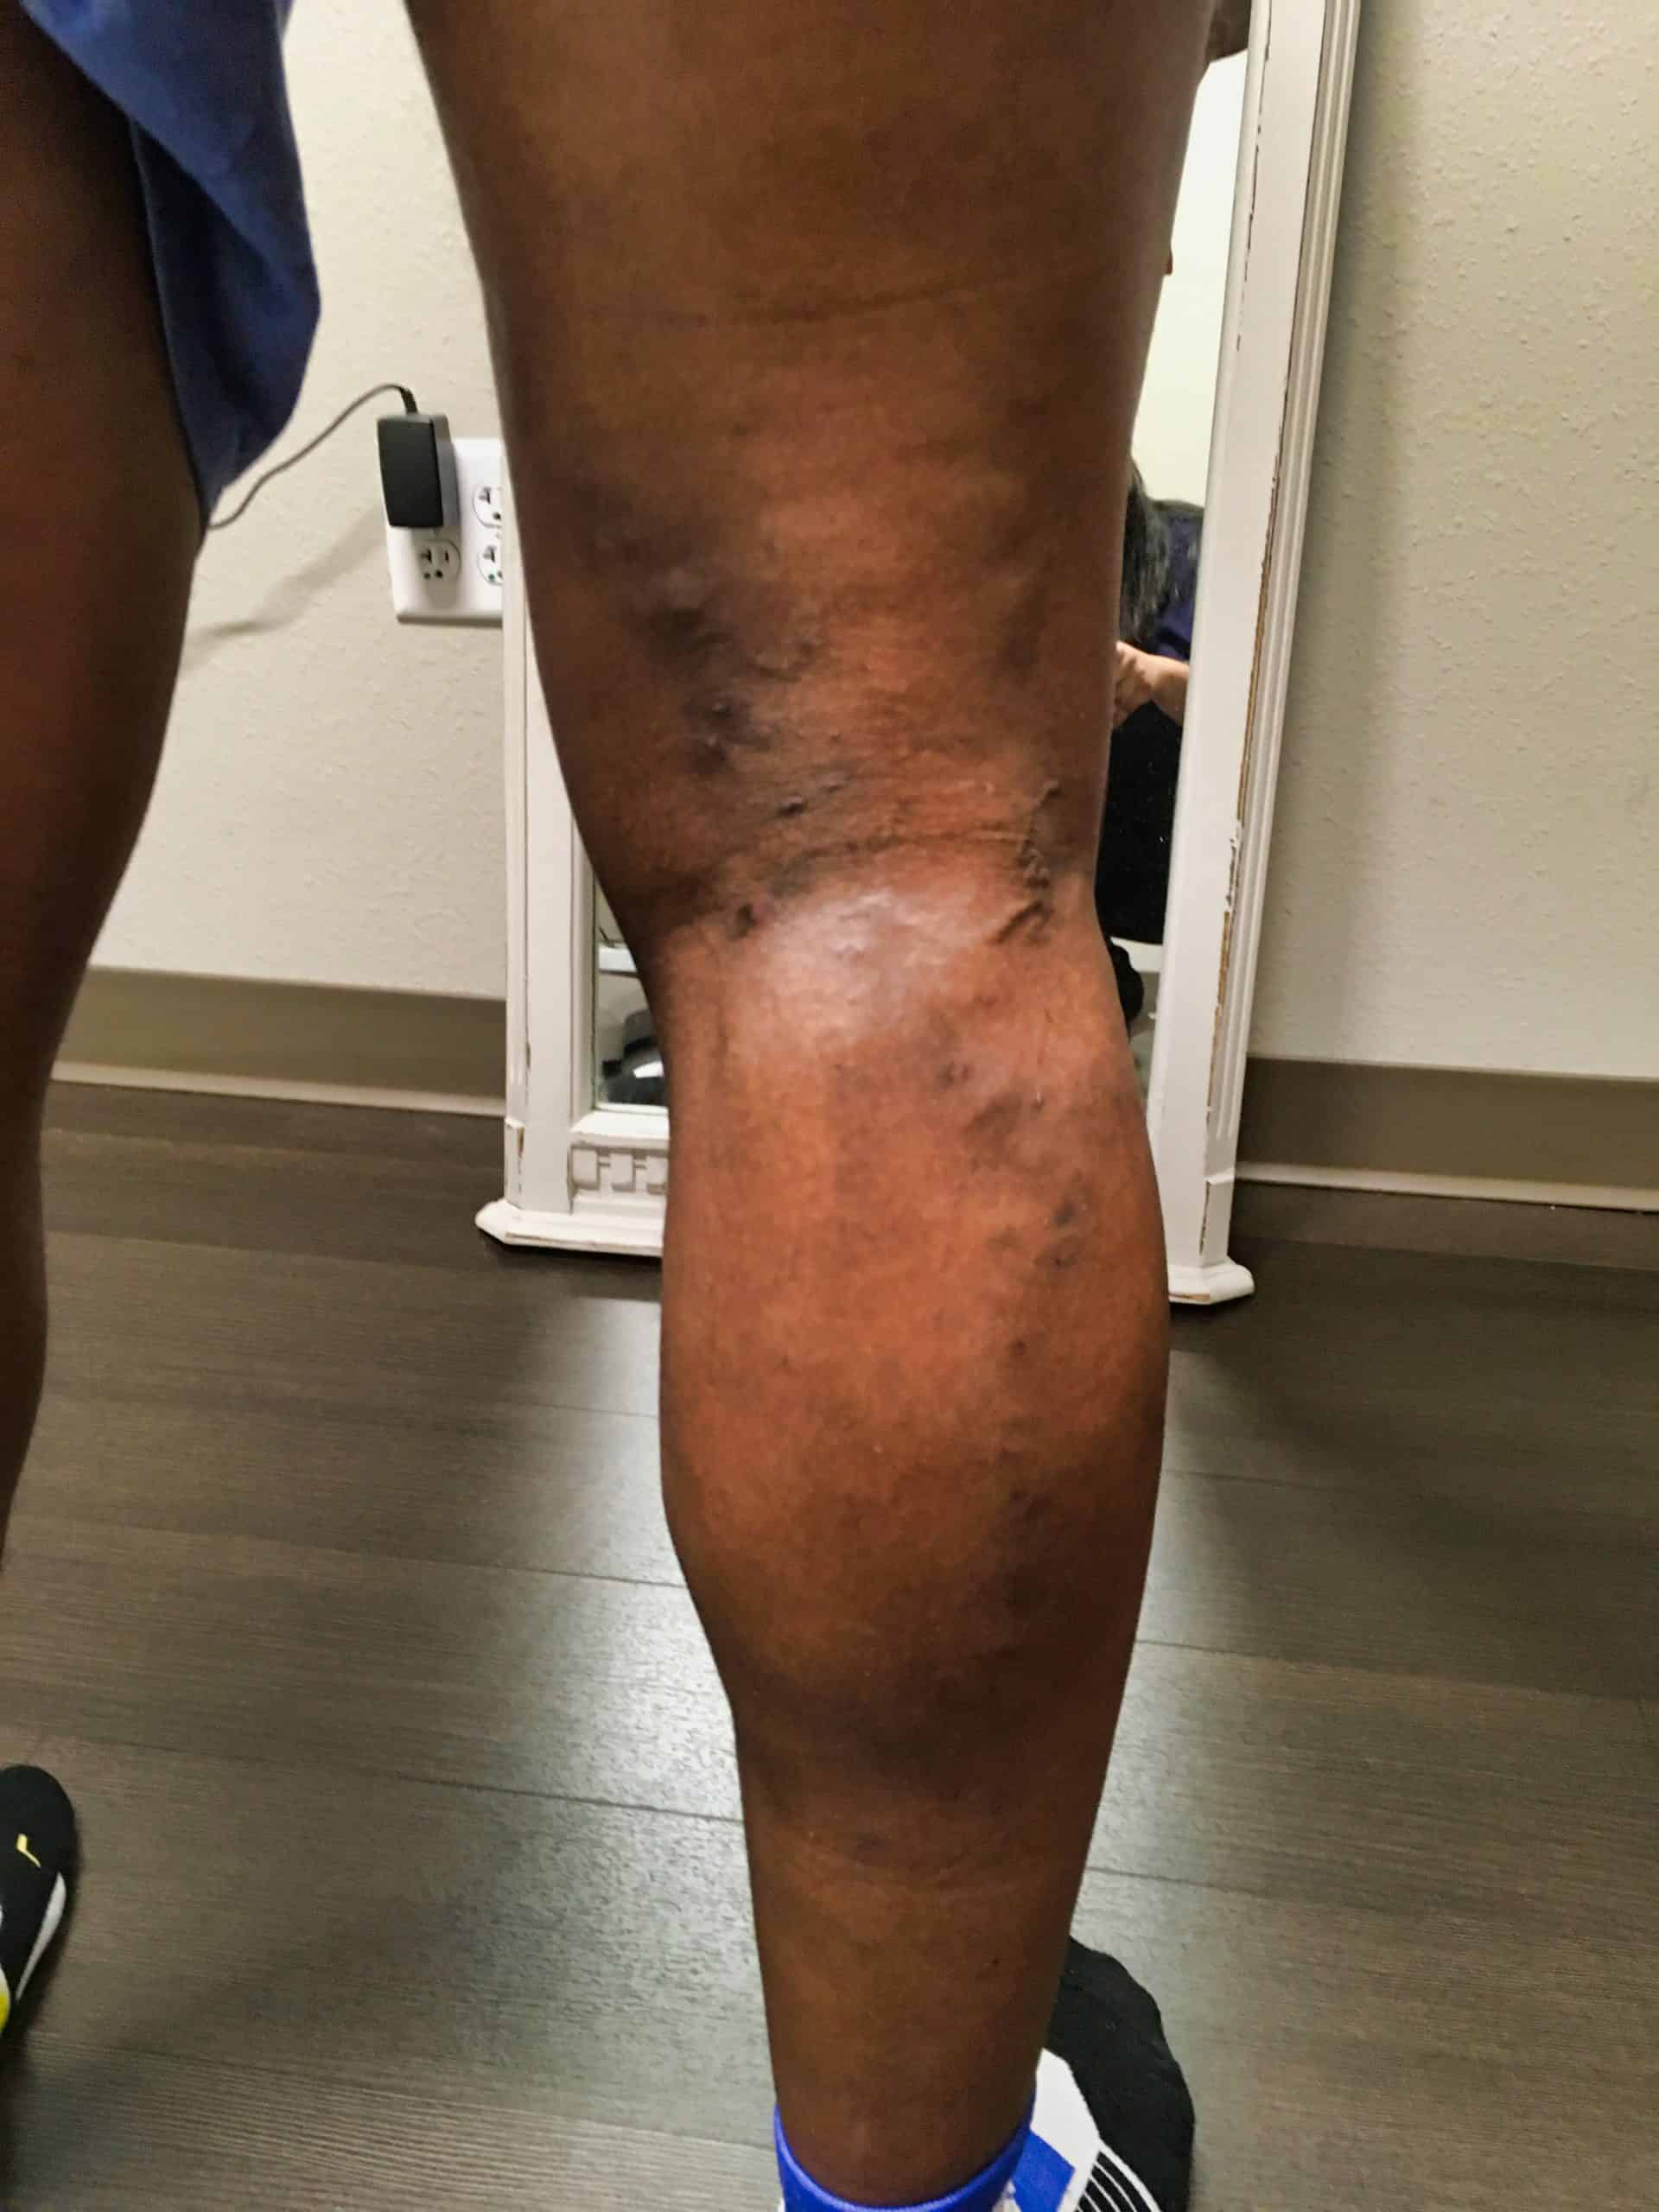 Vericose Veins after 5 weeks of treatment